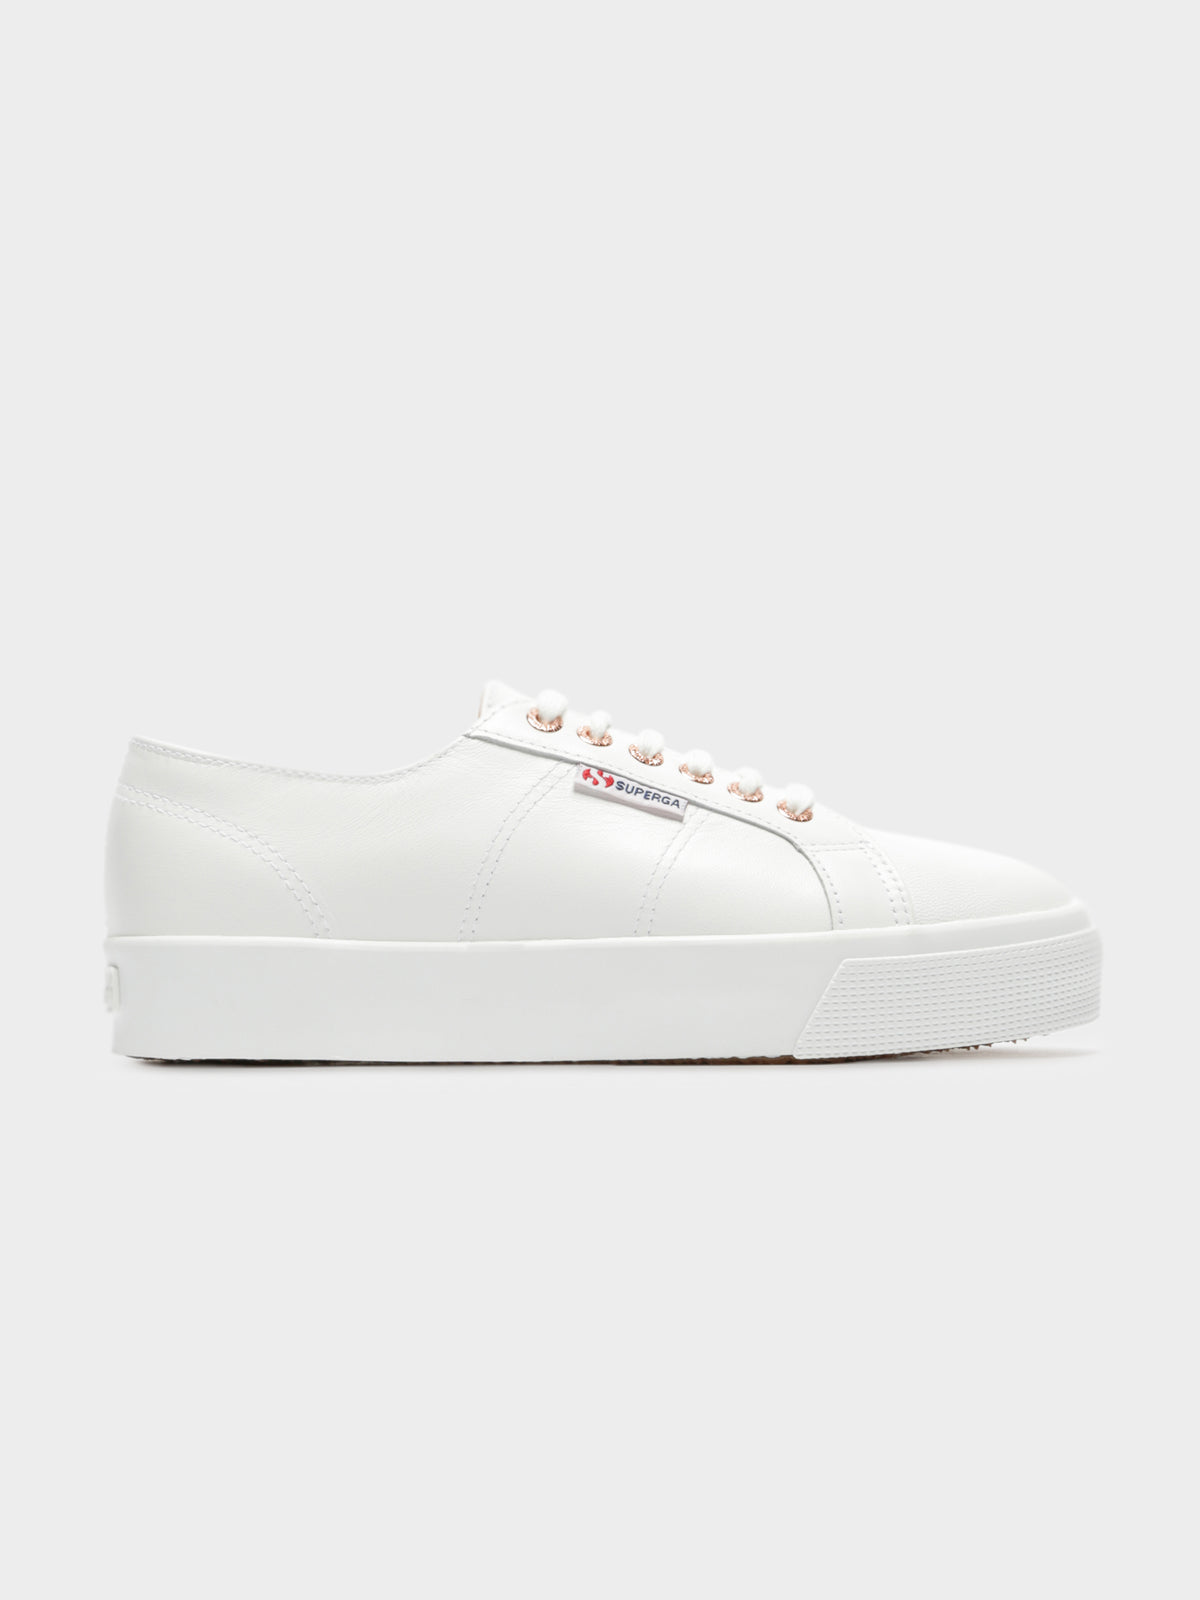 Womens 2730 Leather Nappaleau Sneakers in Rose Gold & White